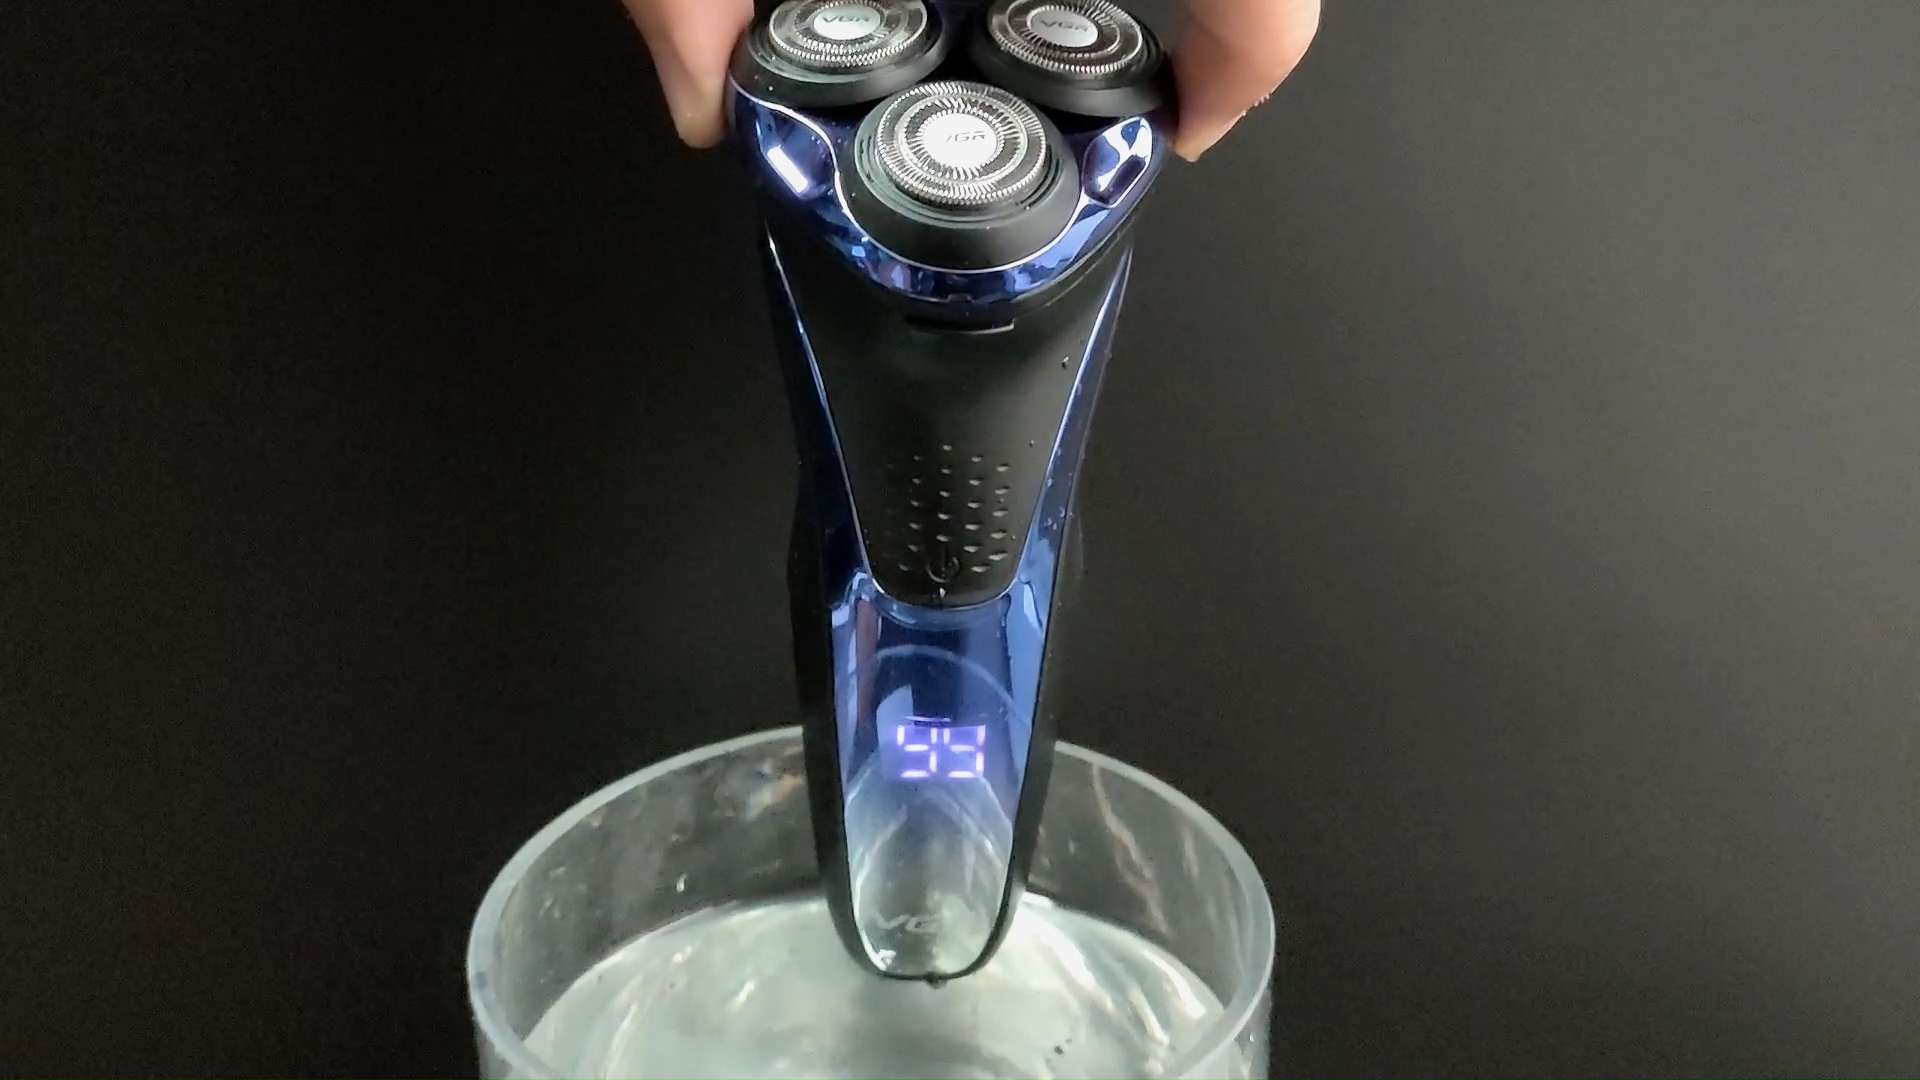 VGR electric V-306 waterproof washable IPX7 shaver for men with LED display m quina de cortar cabelo barbeador